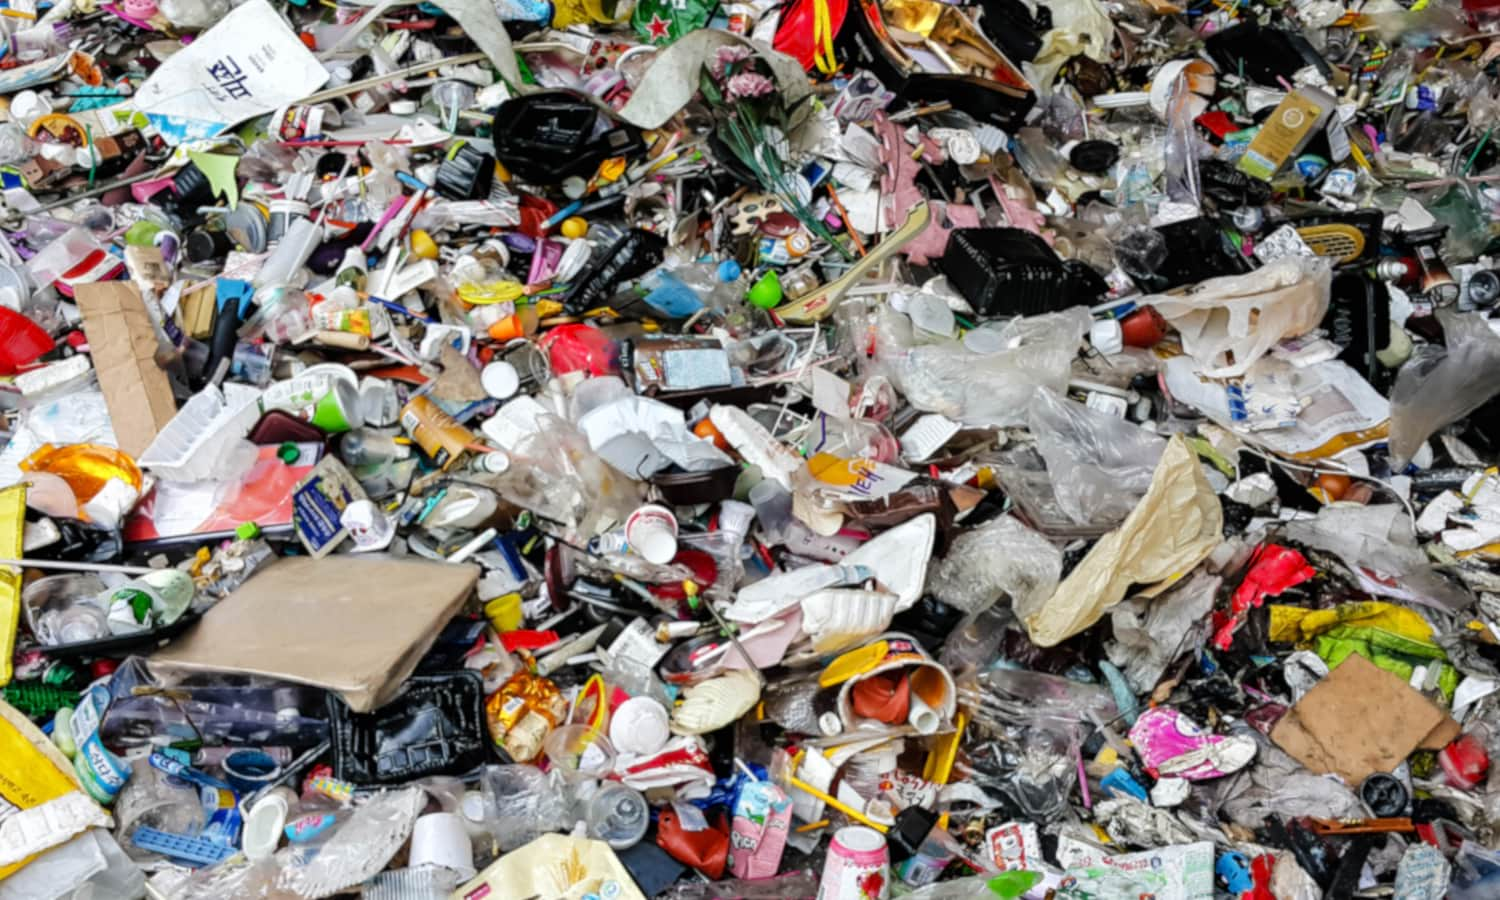 As the global obsession with plastic grows, how will it impact the health of our food system and ultimately ourselves?